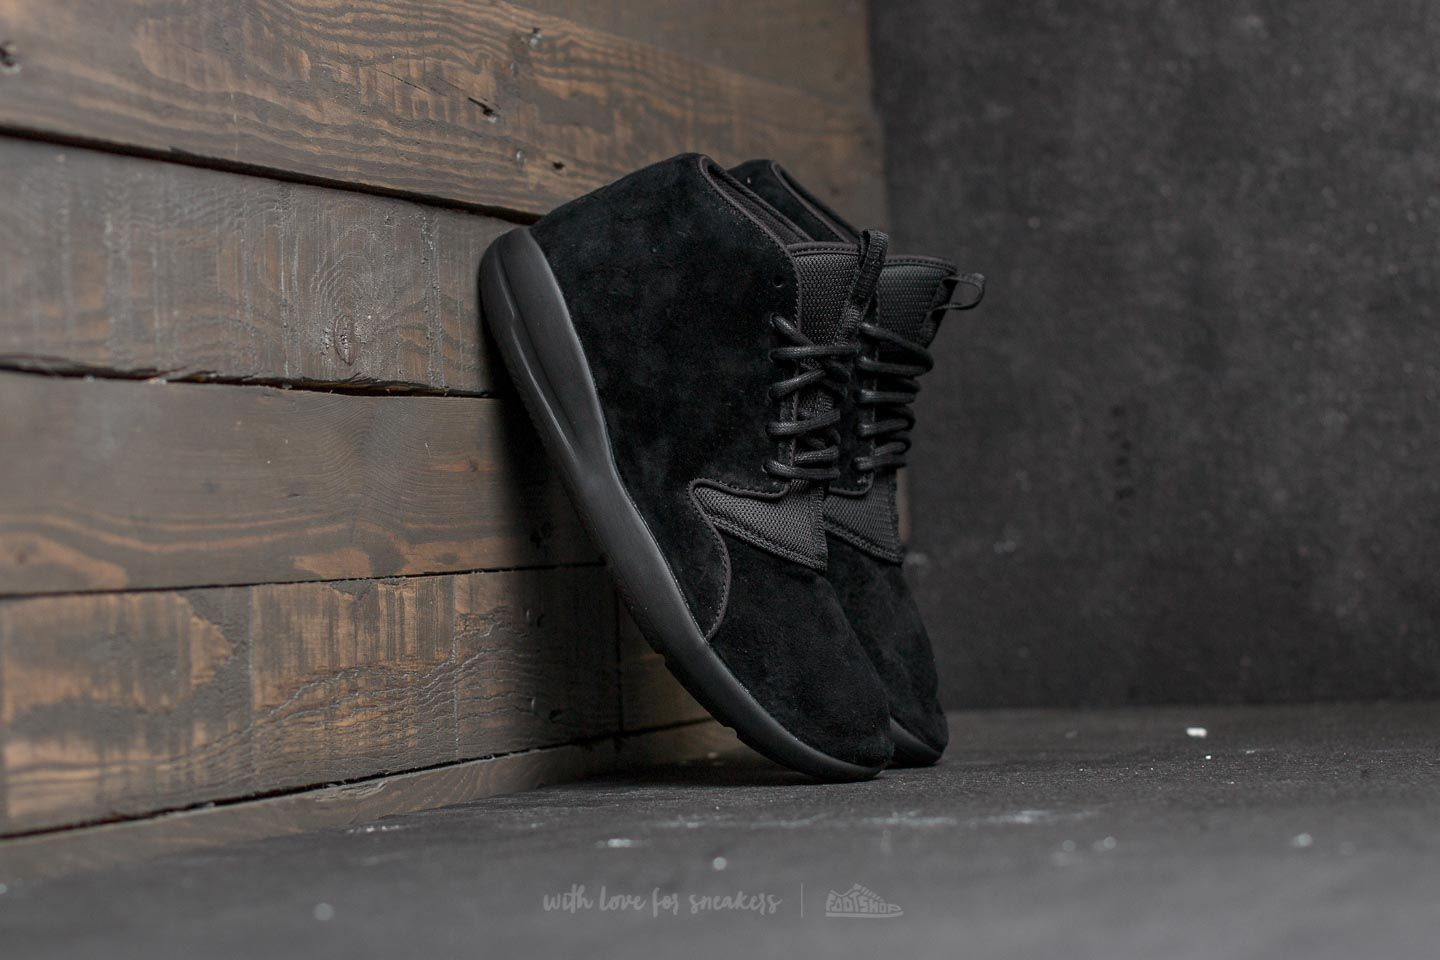 b1d703a45aa77d Jordan Eclipse Chukka Leather Black  Black